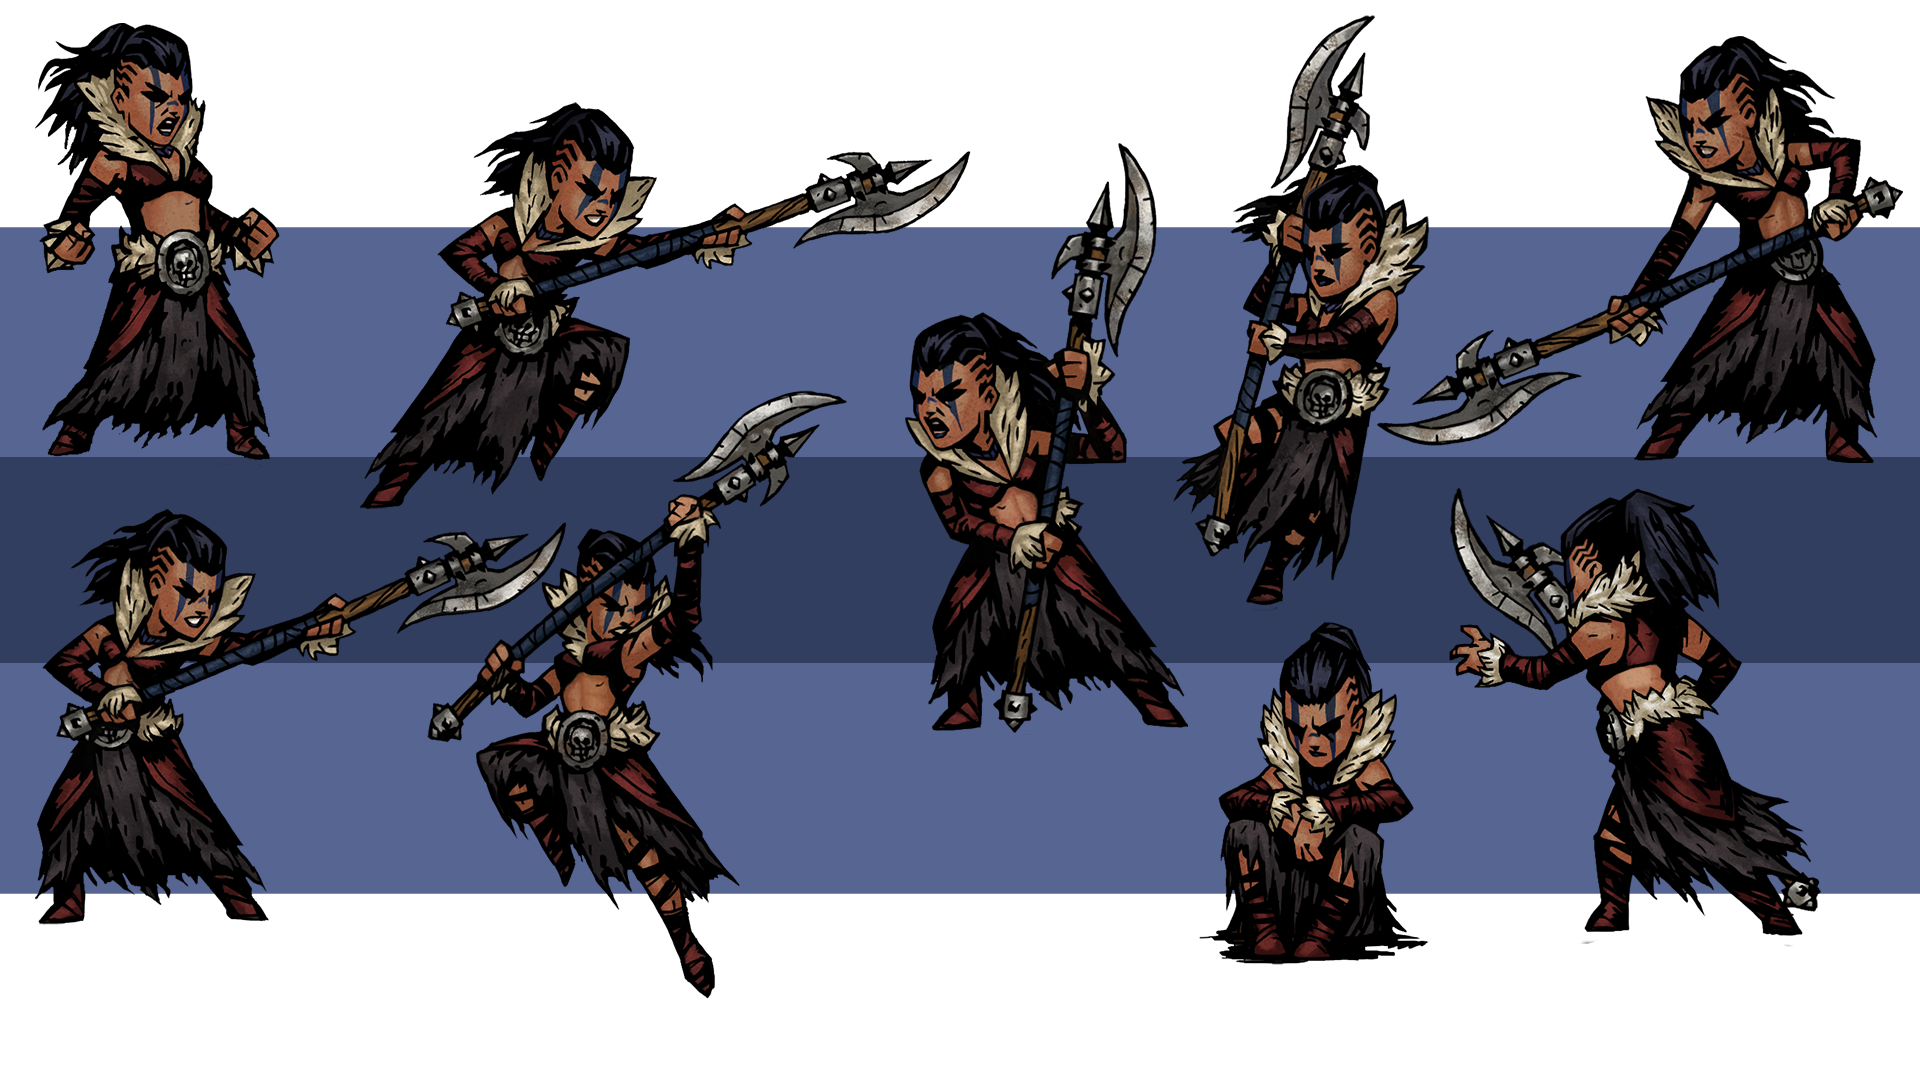 Hellion Alternative Outfit At Darkest Dungeon Nexus Mods And Community Darkest Dungeon Hellion Character Design available on steam/humble/gog a challenging gothic videogame rpg about the psychological stresses of adventuring. darkest dungeon hellion